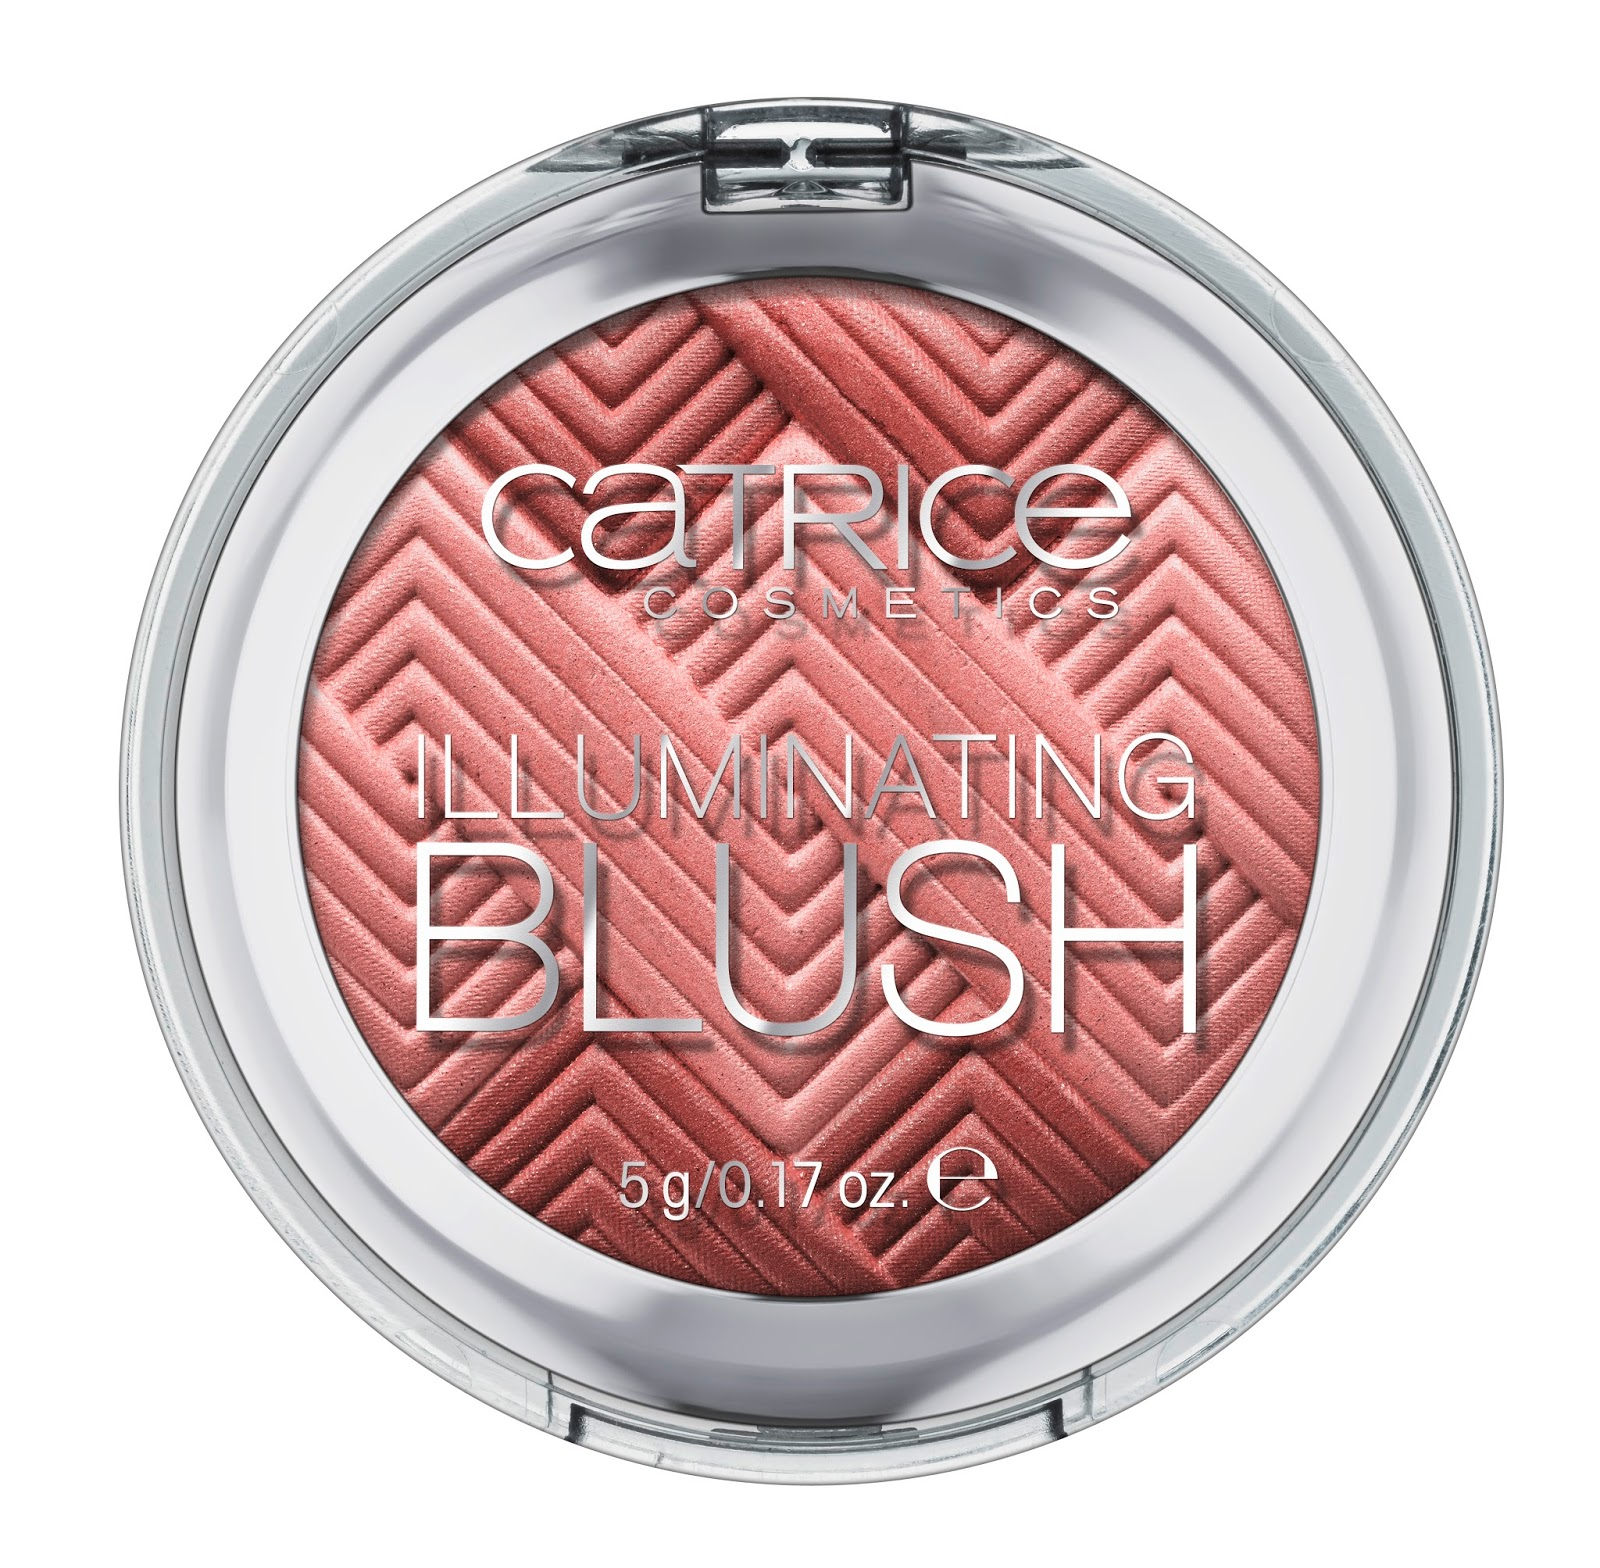 Catrice - Illuminating Blush